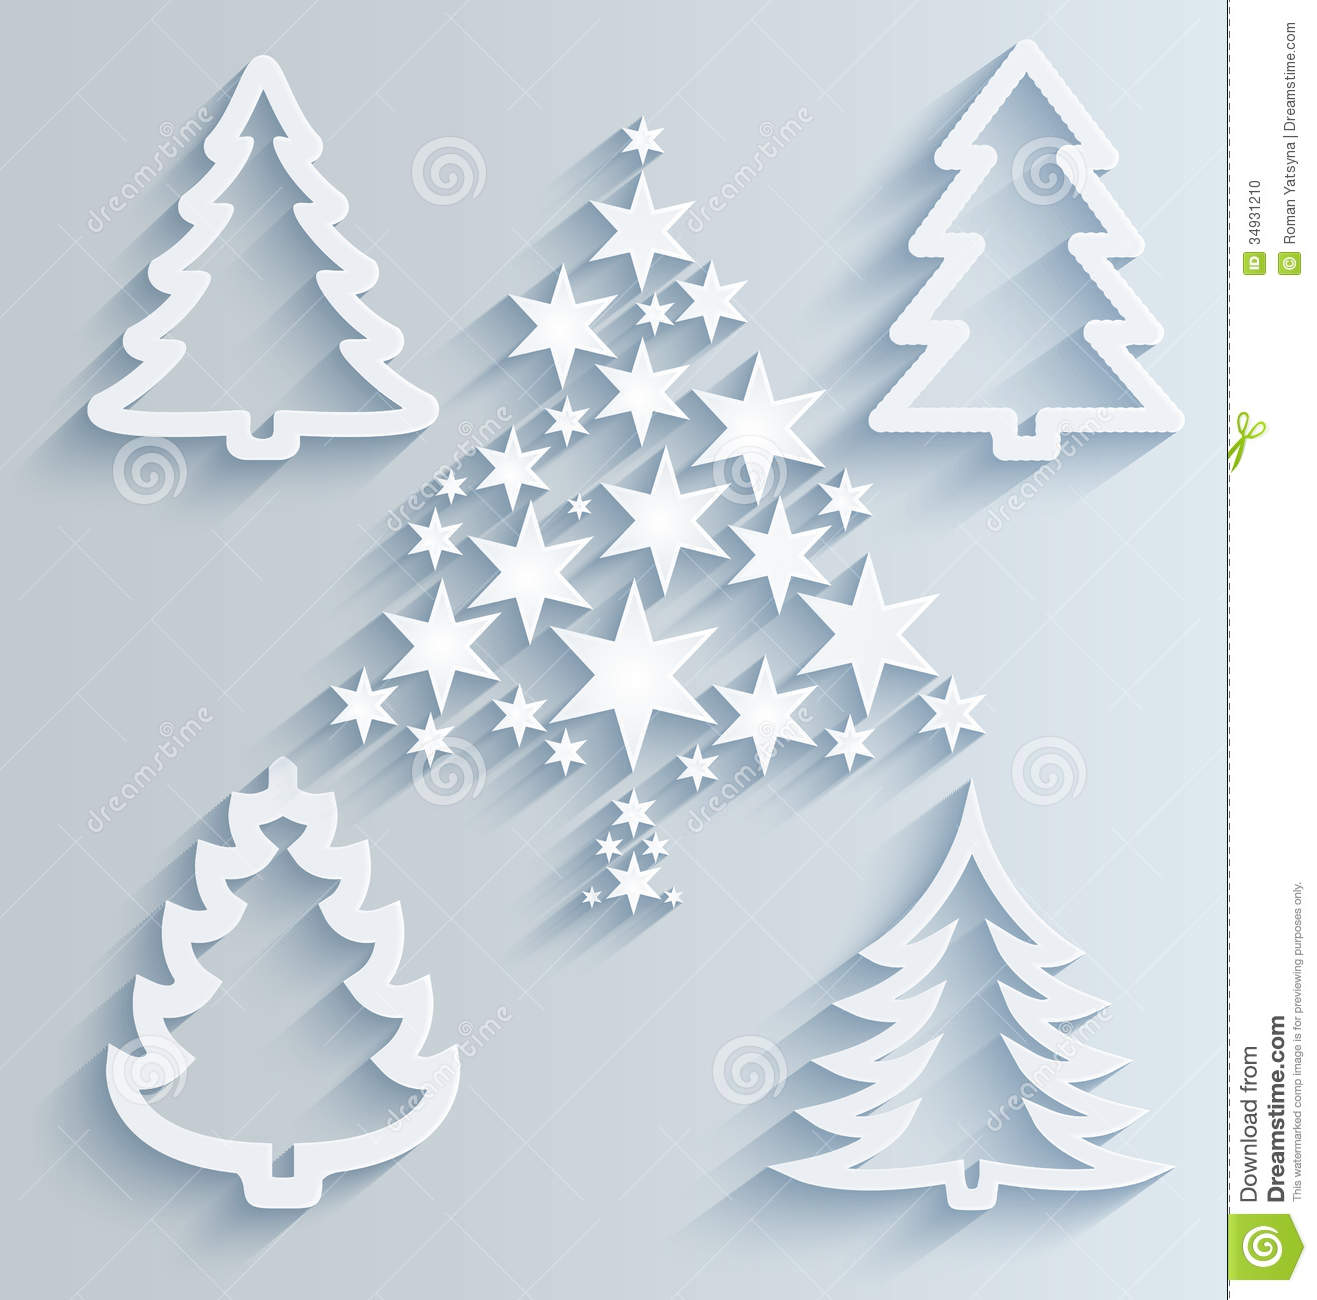 Christmas trees paper holiday decorations stock for How to make paper christmas decorations at home